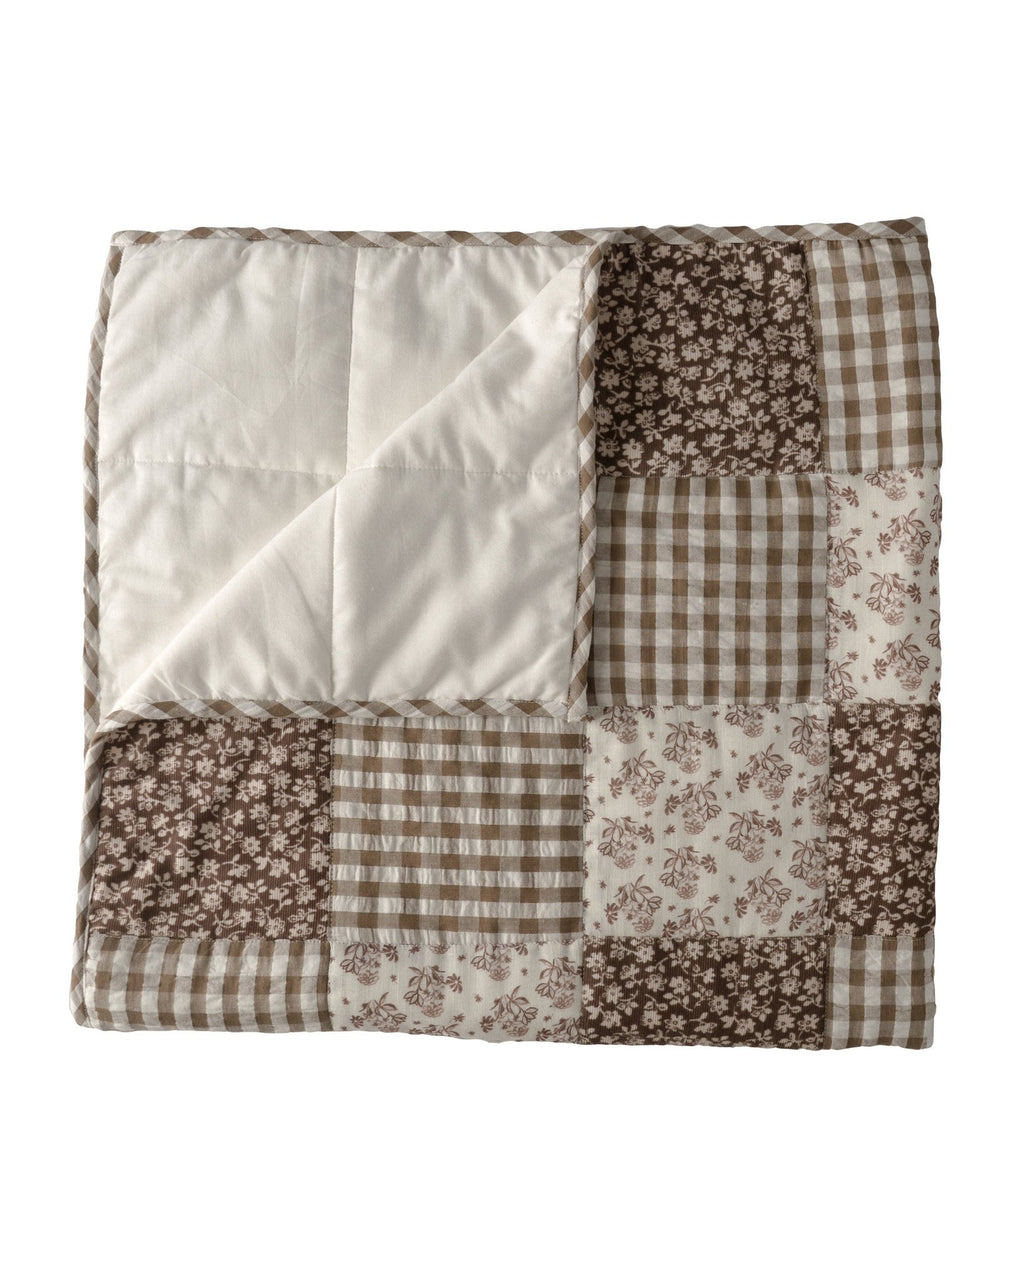 Patchwork throw -small - nut floral